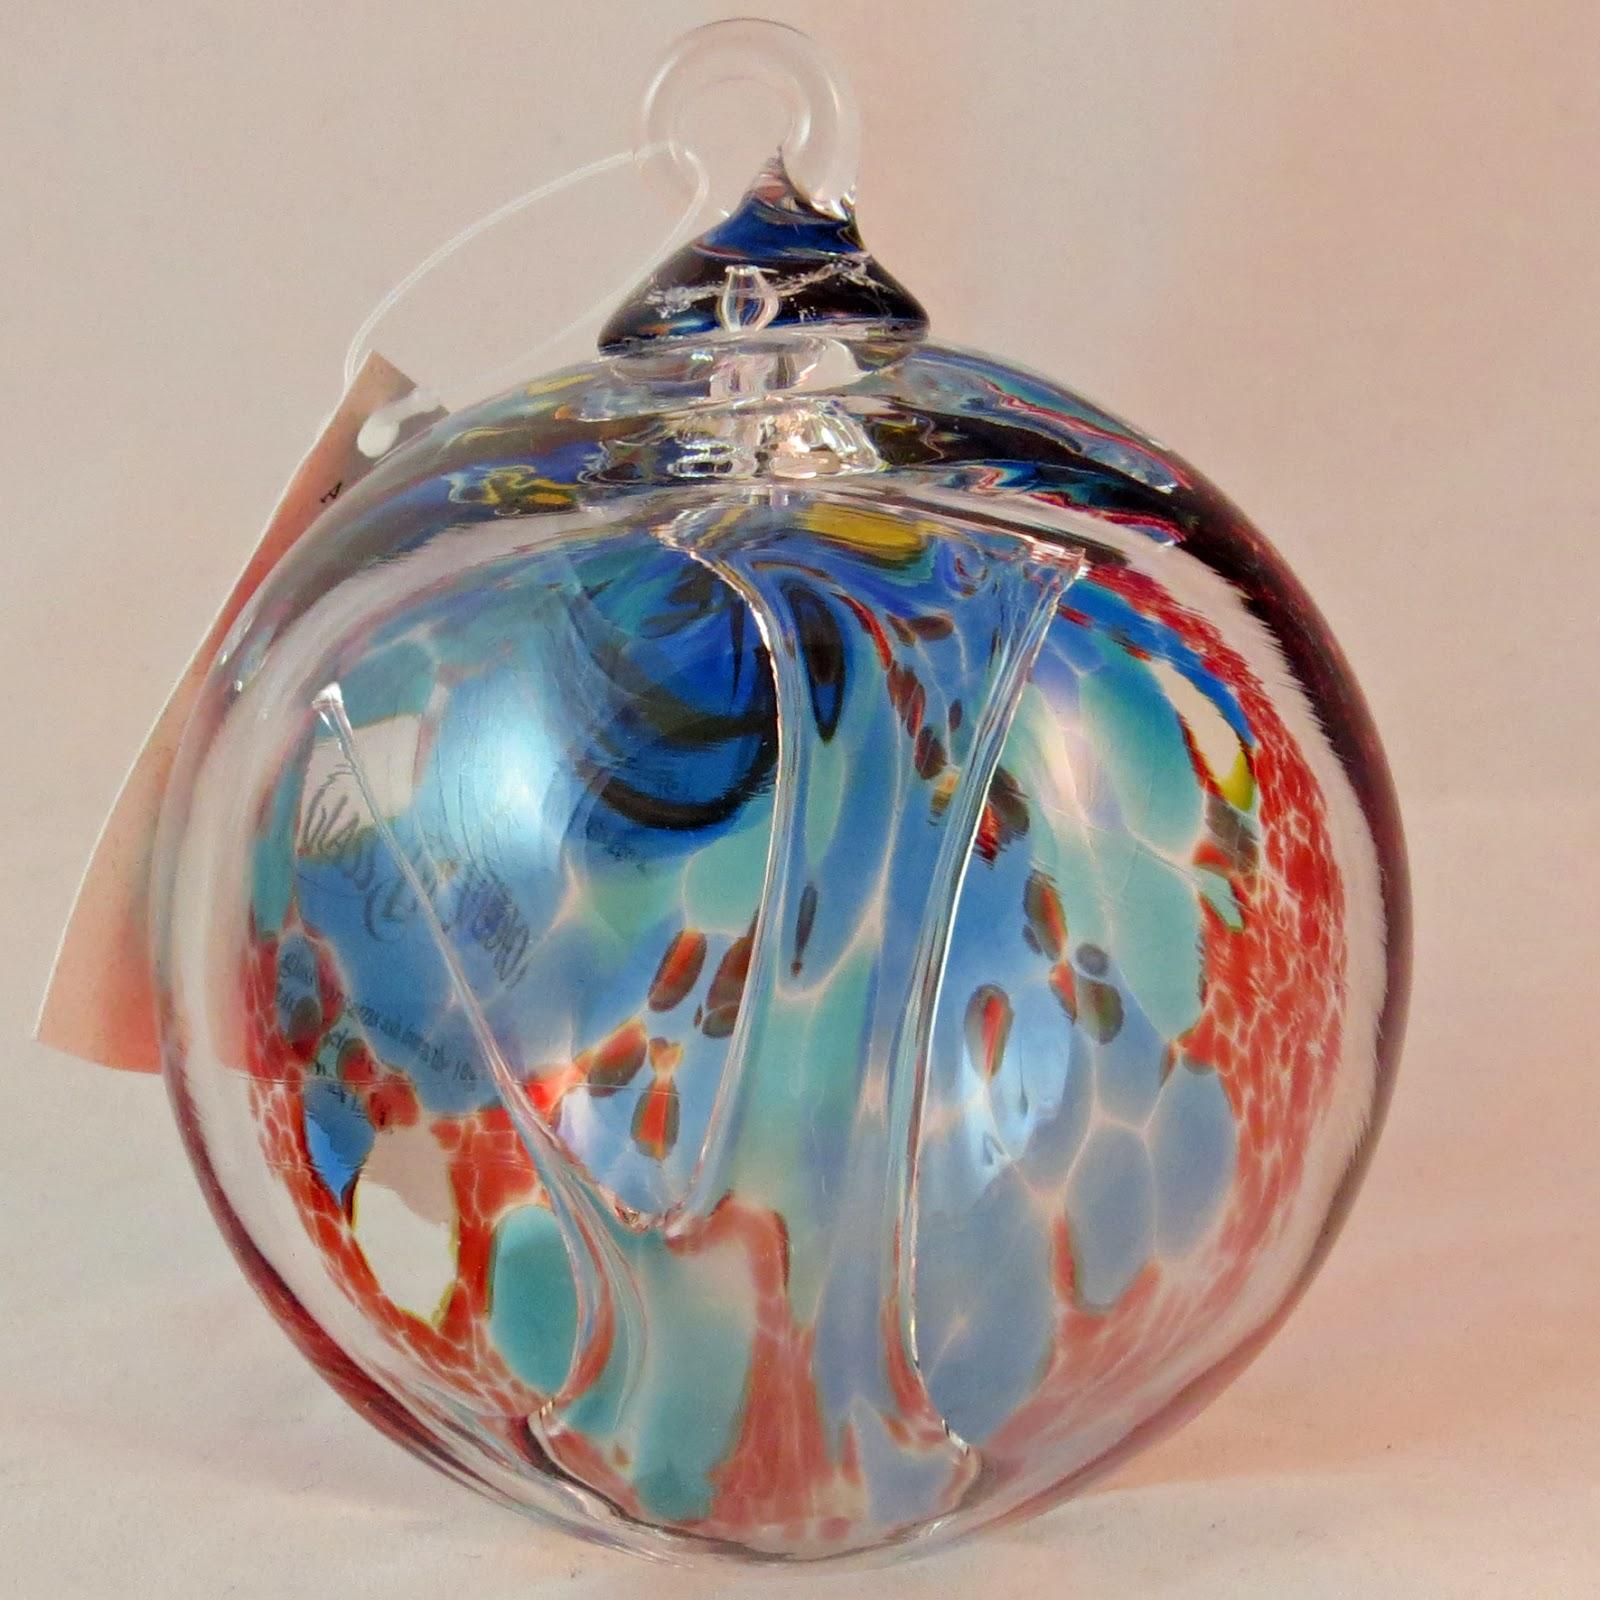 Holidays and memories spirit witch balls by glass eye studios